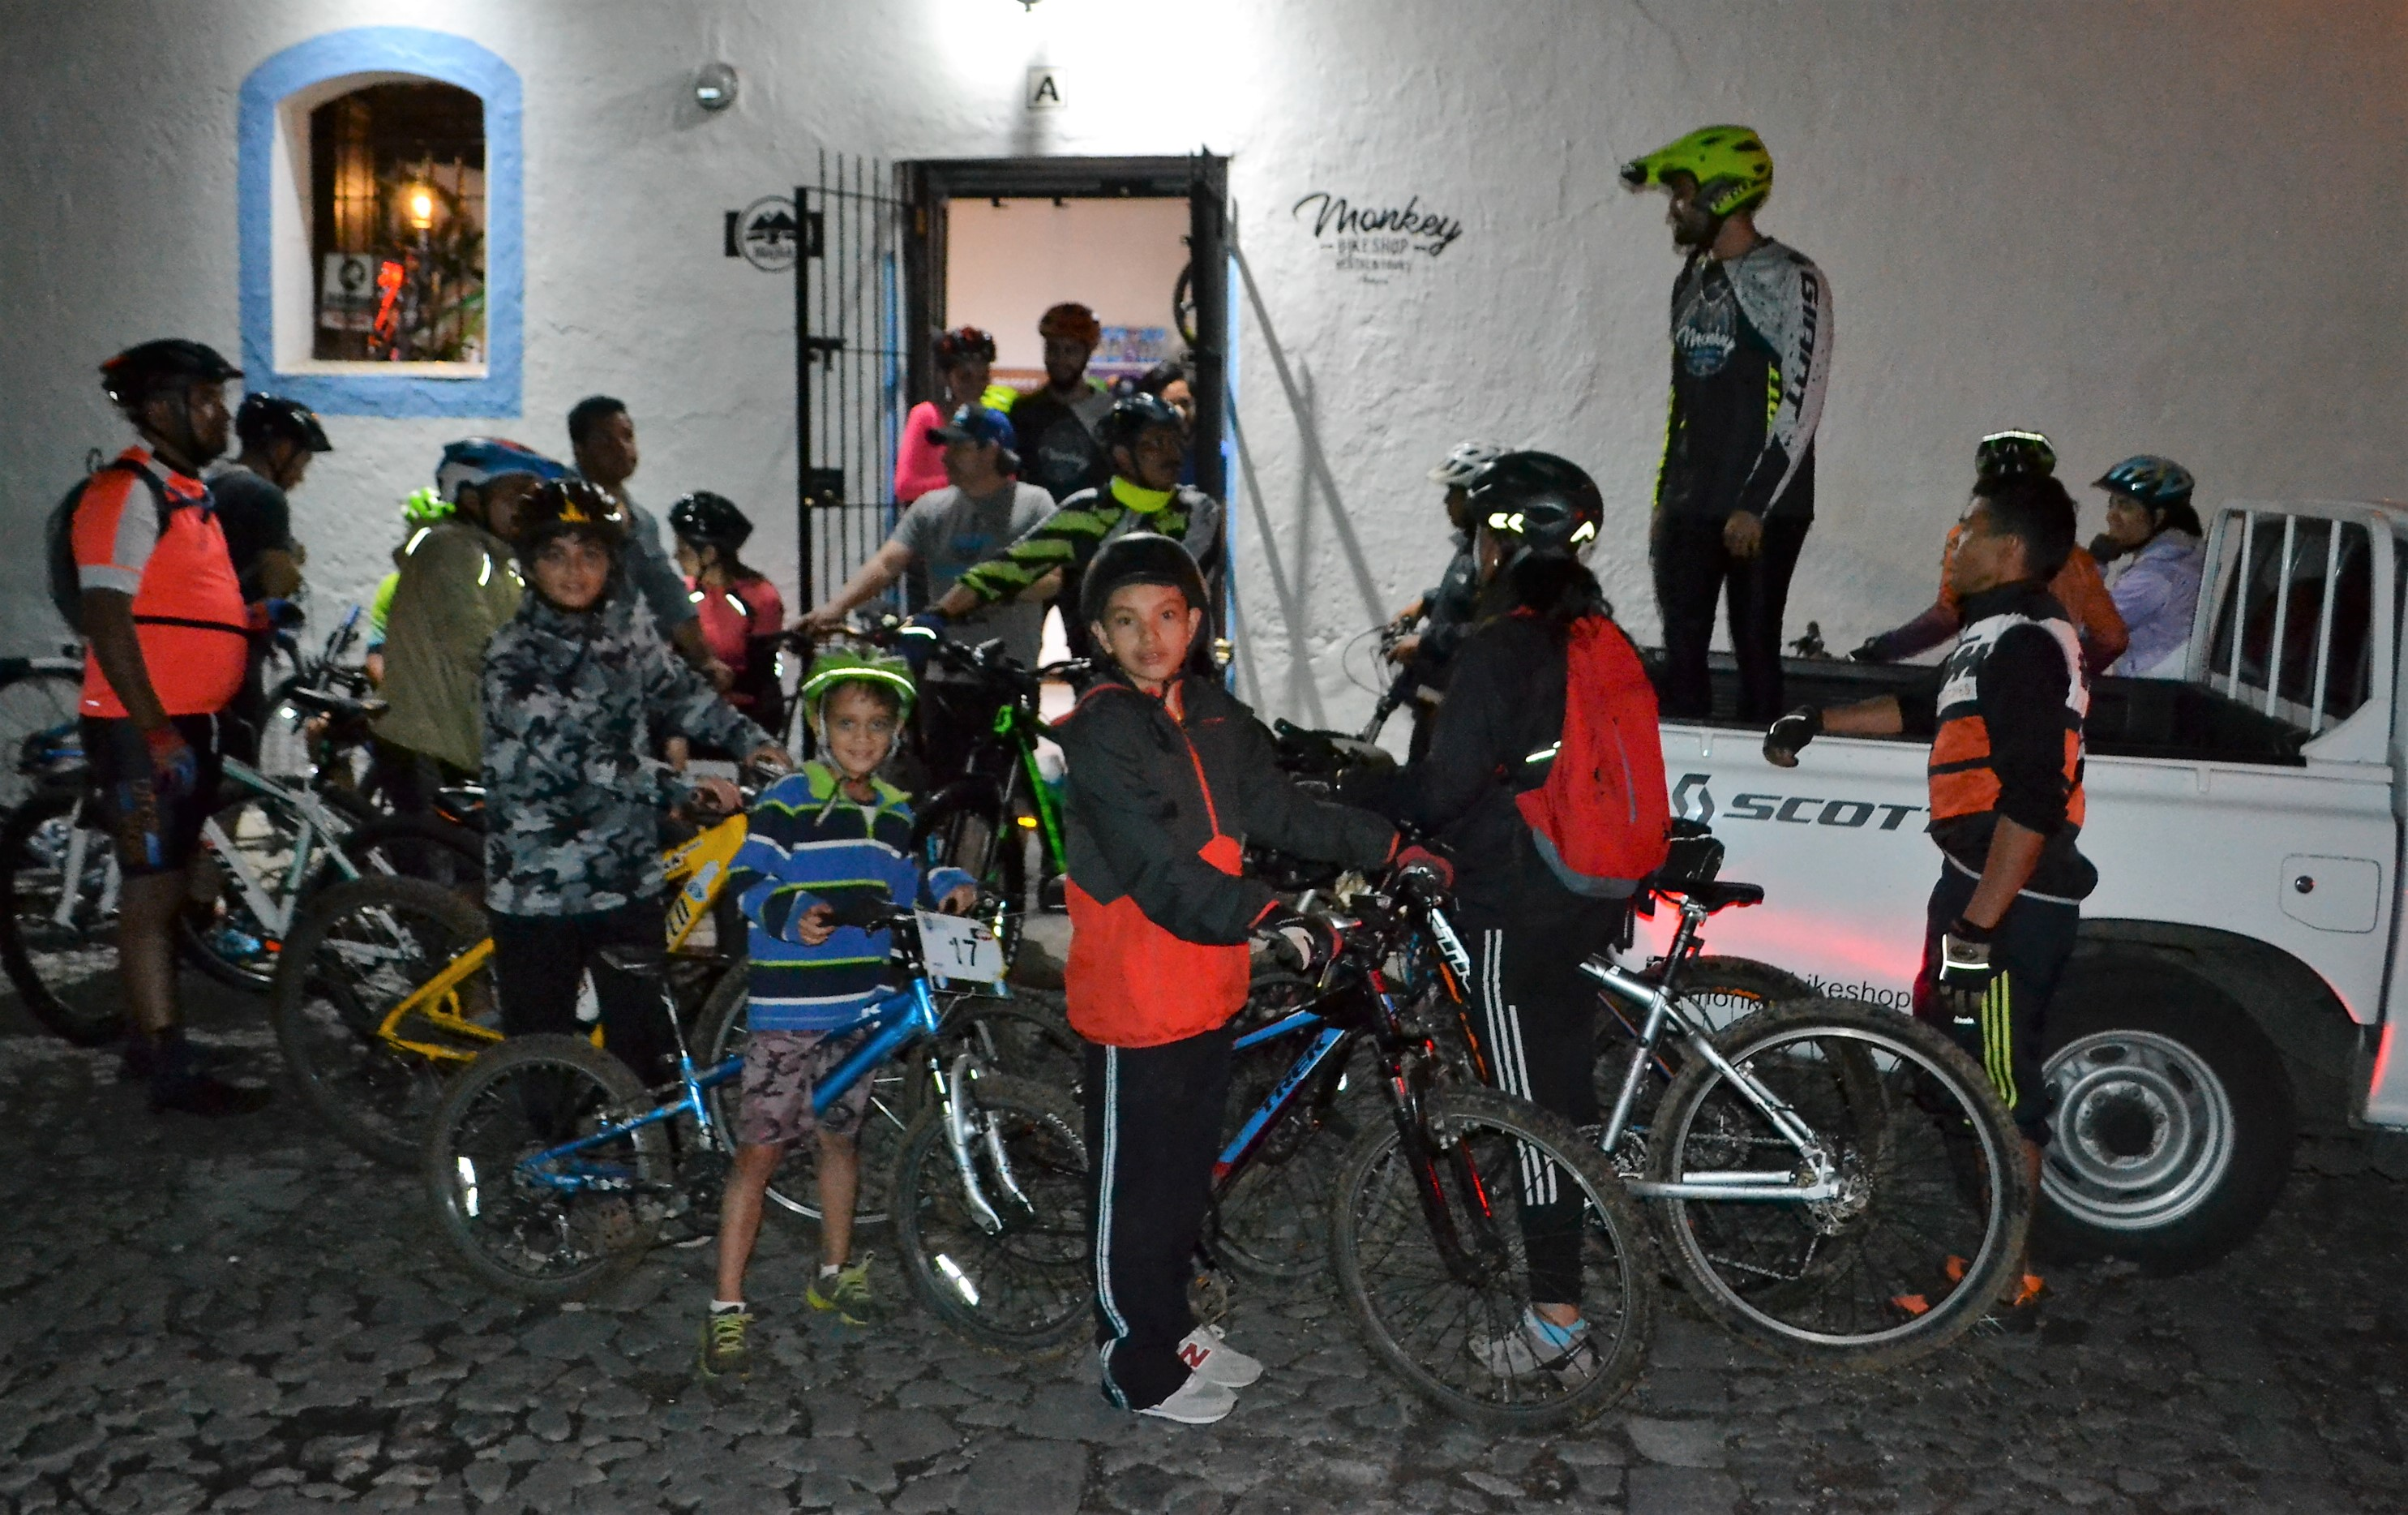 night rider, antigua guatemala, biking with kids